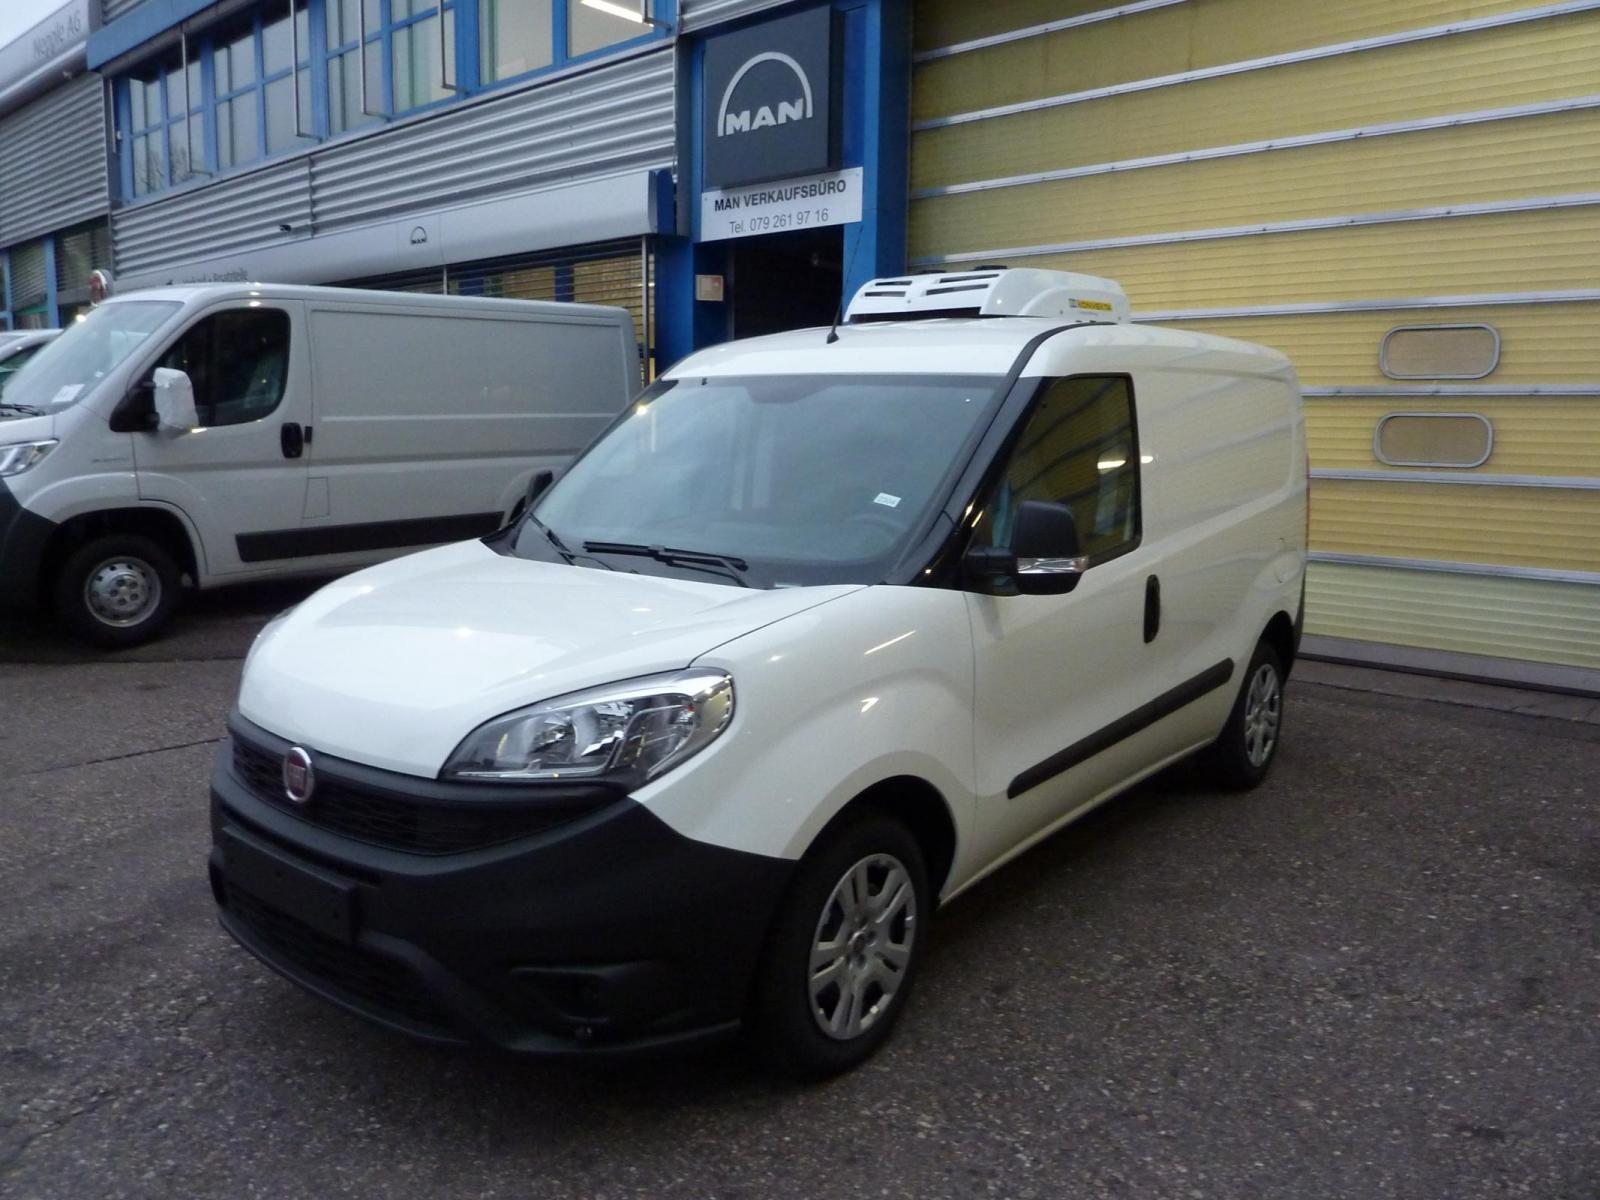 Fiat Doblo 1.3 MJ, 95 PS